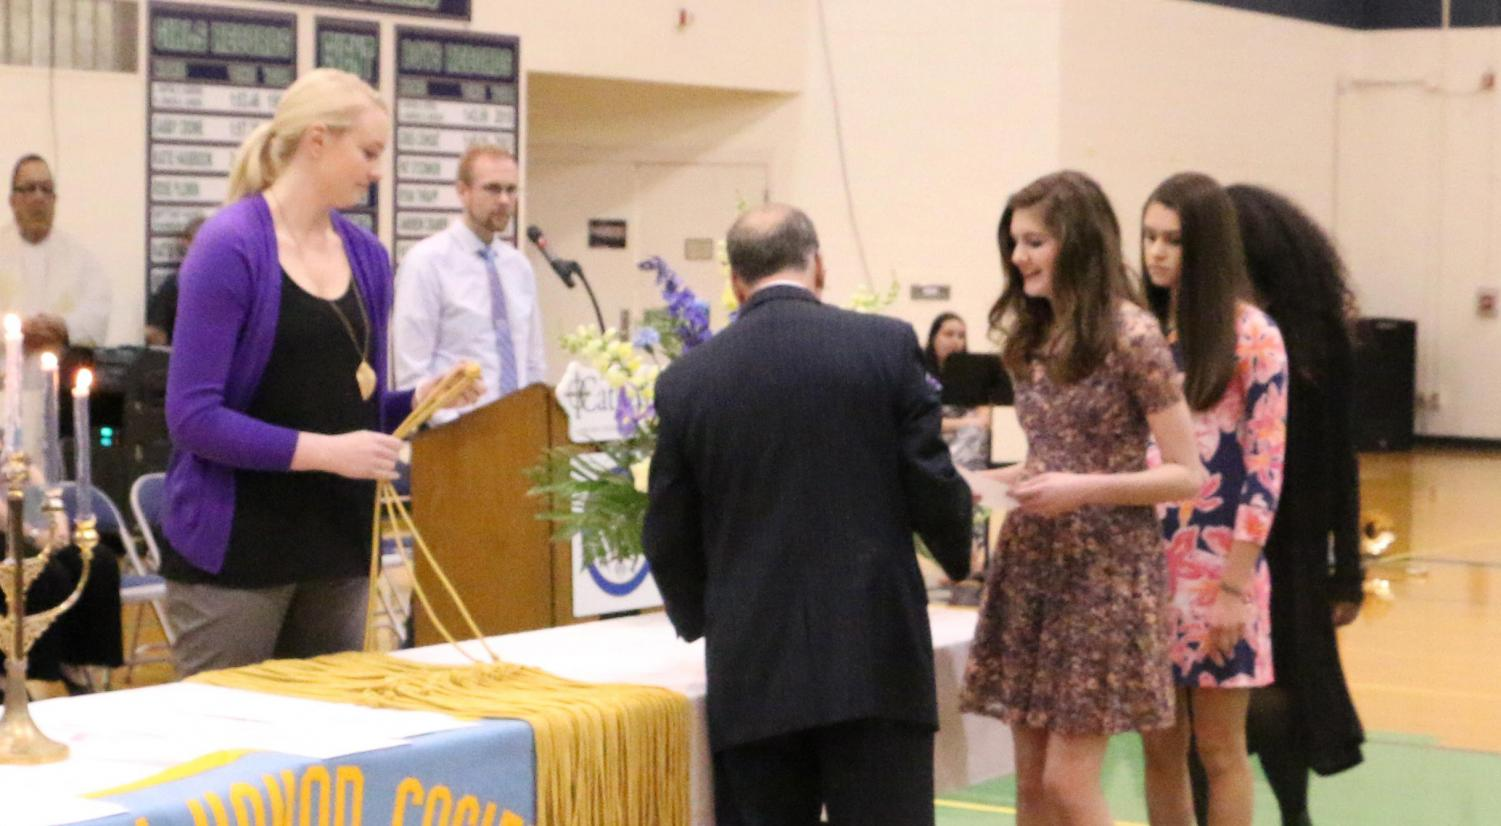 Students from the Class of 2017 receive their chords at the National Honors Society ceremony. This year's event will take place April 28 in the Welch Activity Center.